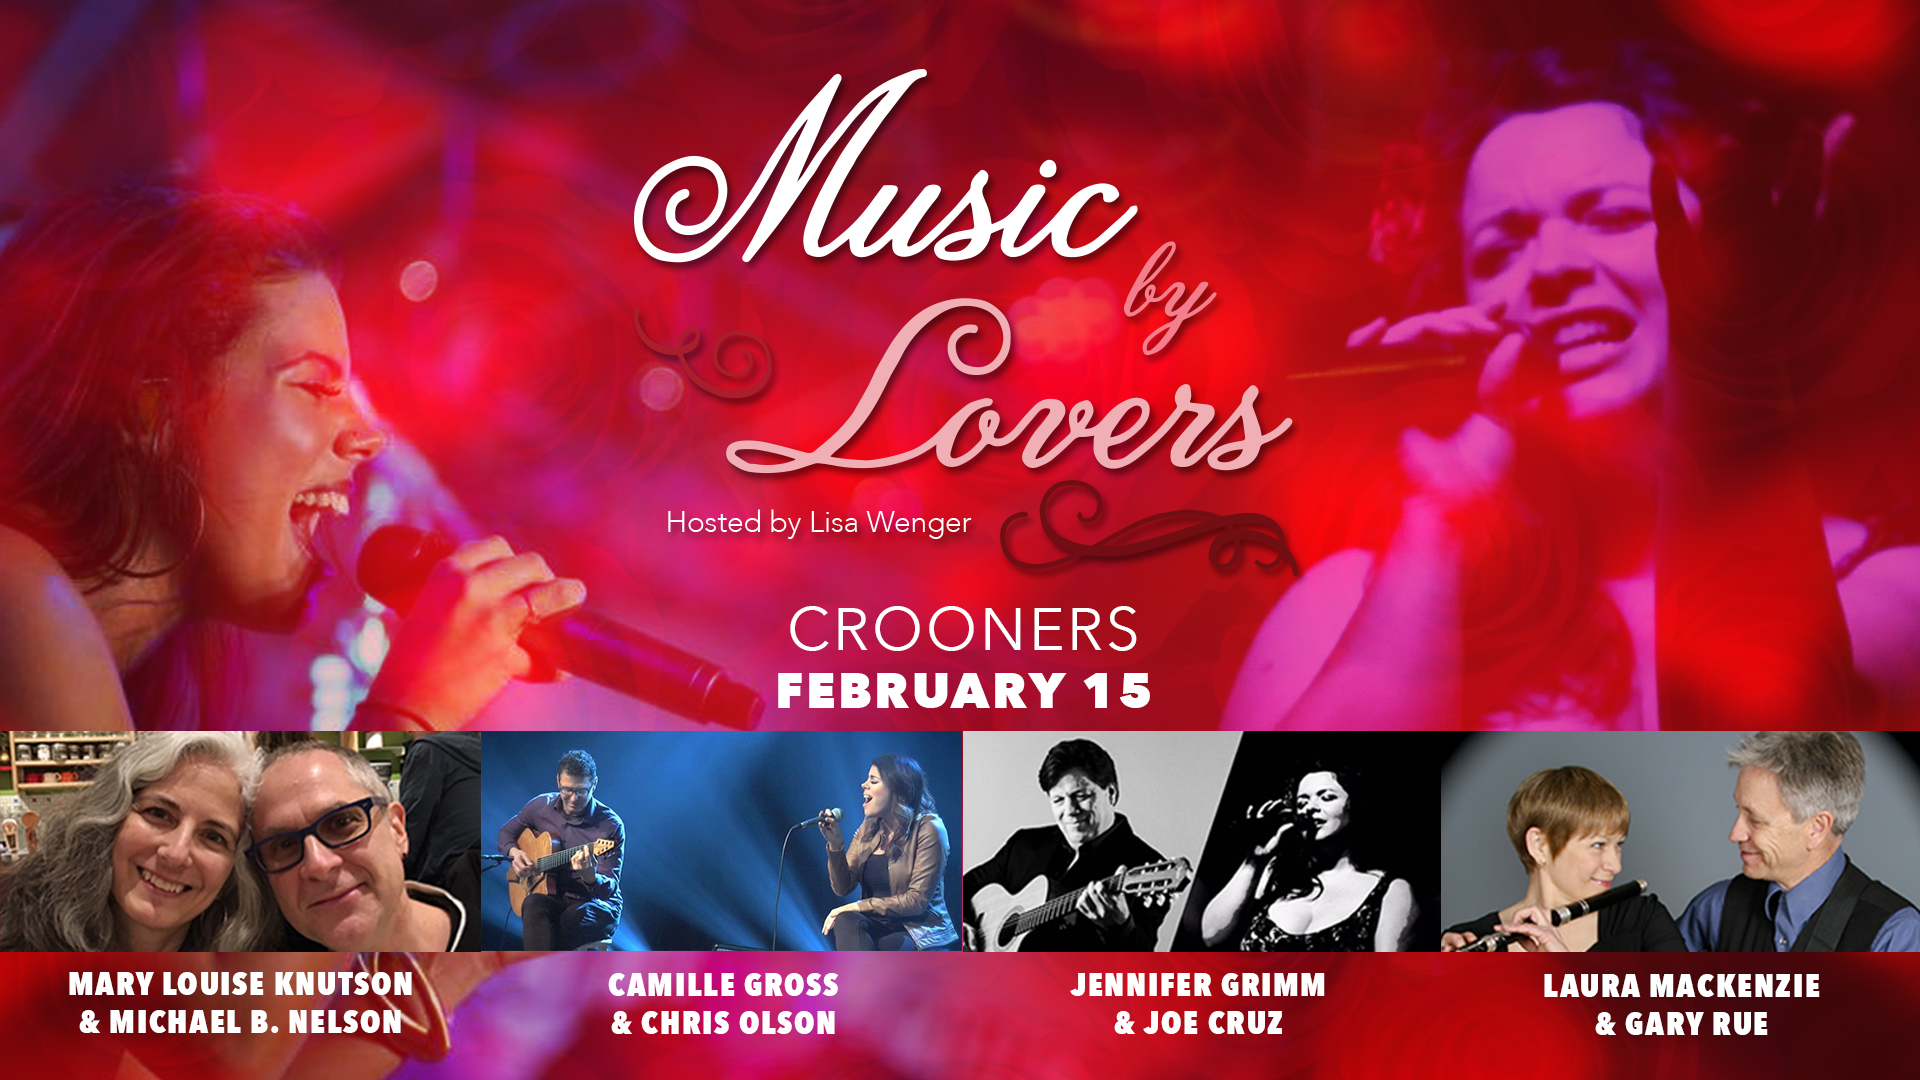 """Music By Lovers - Acclaimed Musical Couples - Lisa Wenger hosts """"Music by Lovers,"""" our annual show of love, as four acclaimed Twin Cities musical couples -- Jennifer Grimm & Joe Cruz; Camille Gross & Chris Olson; Marie-Louise Knutson & Michael B. Nelson; and Laura MacKenzie & Gary Rue -- come together for a special evening of musical conjugality."""